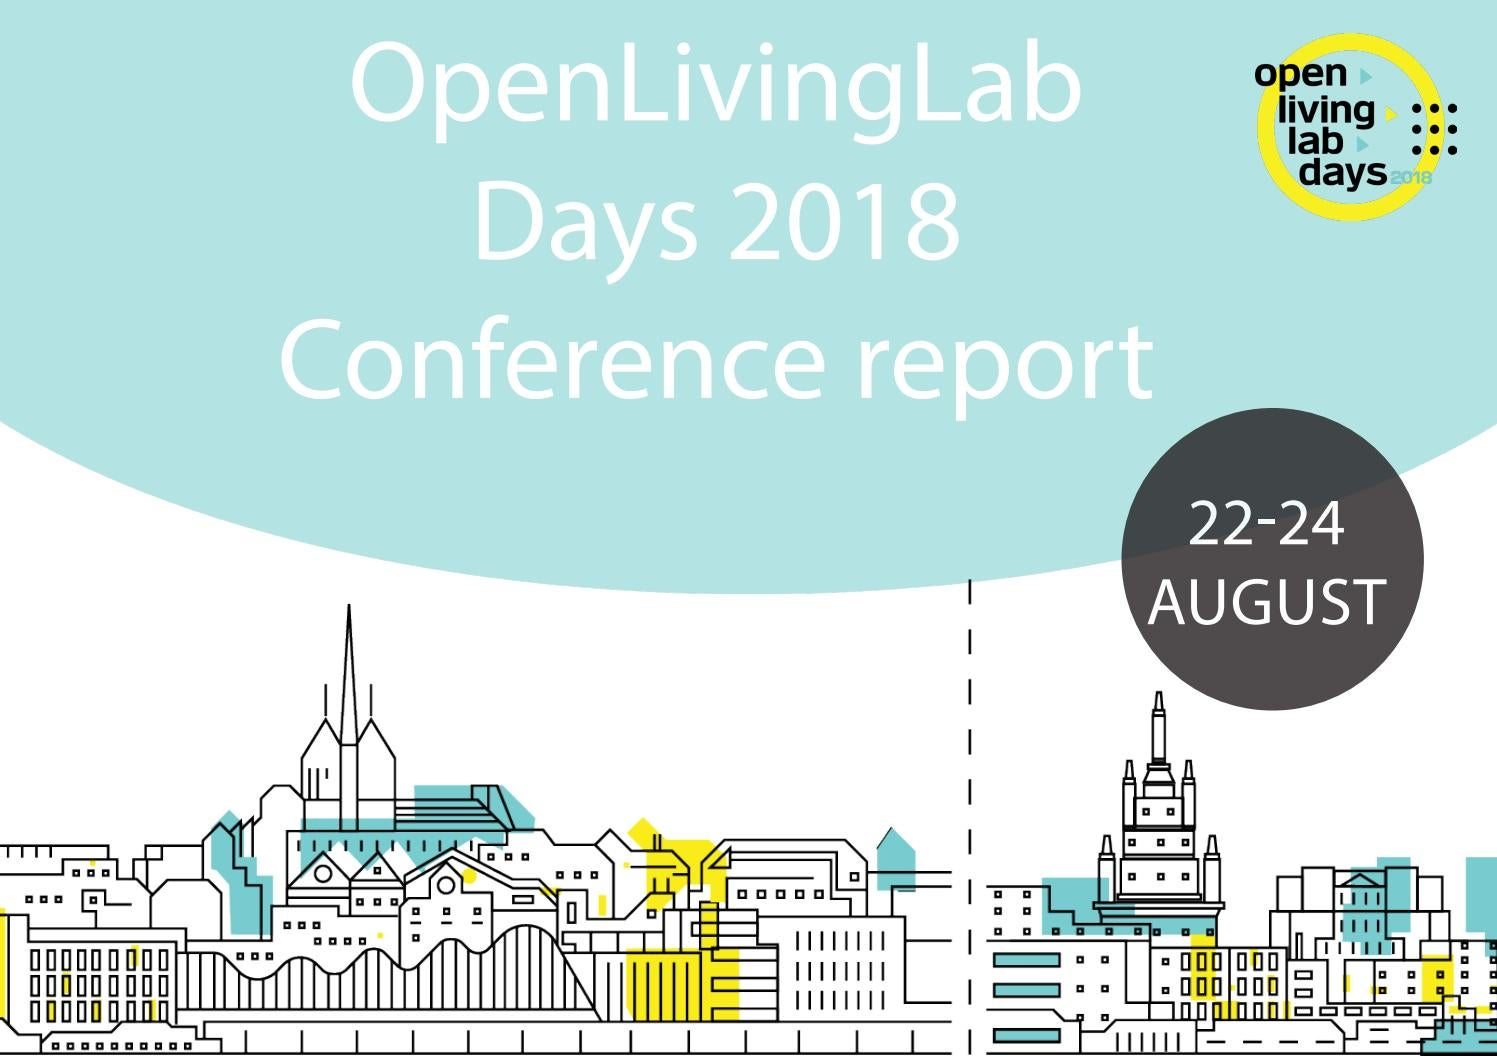 OpenLivingLab Days 2018 conference report by European